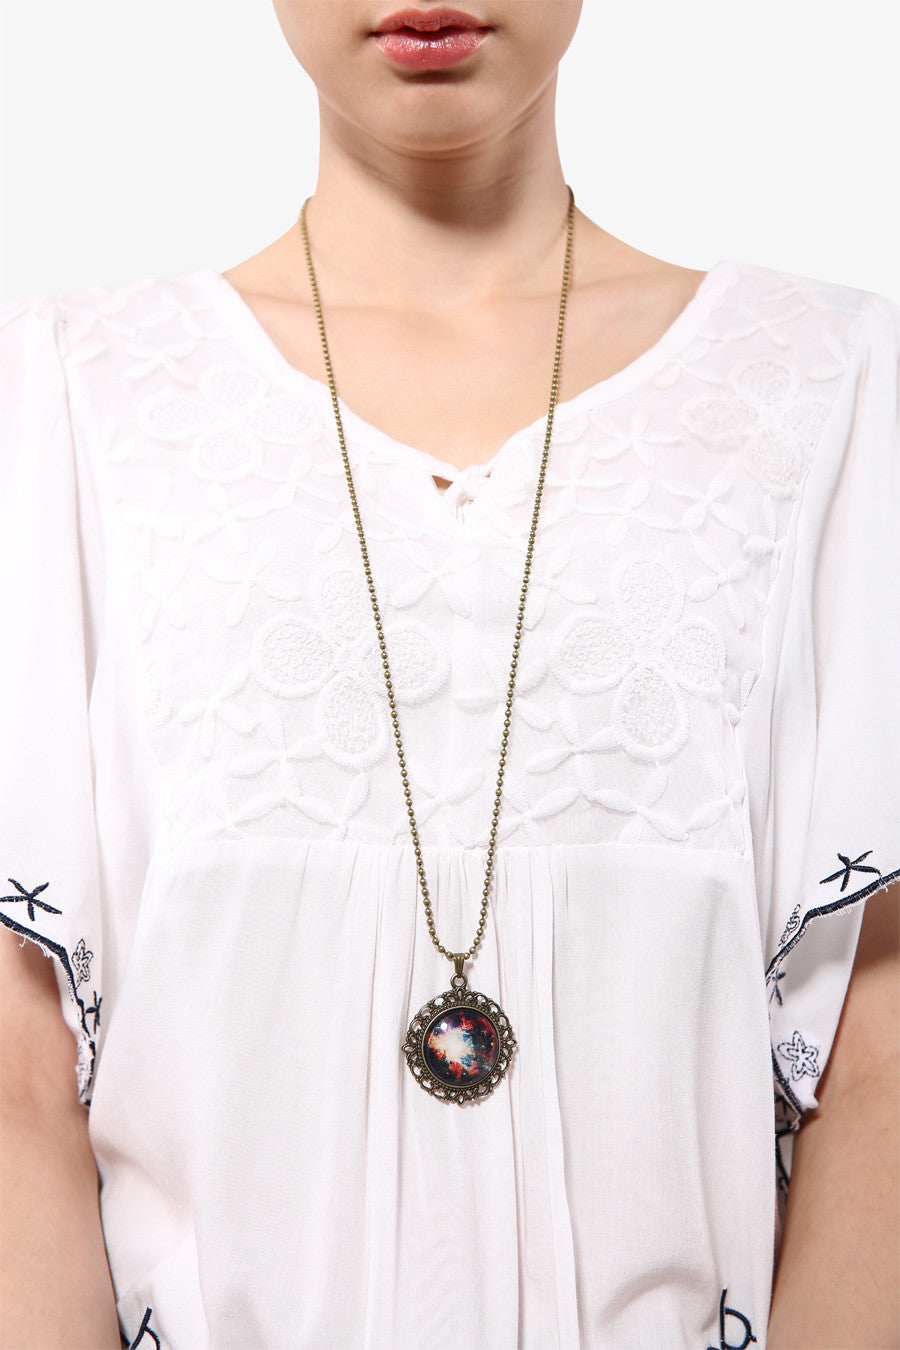 Retro Rosette Moon Necklace